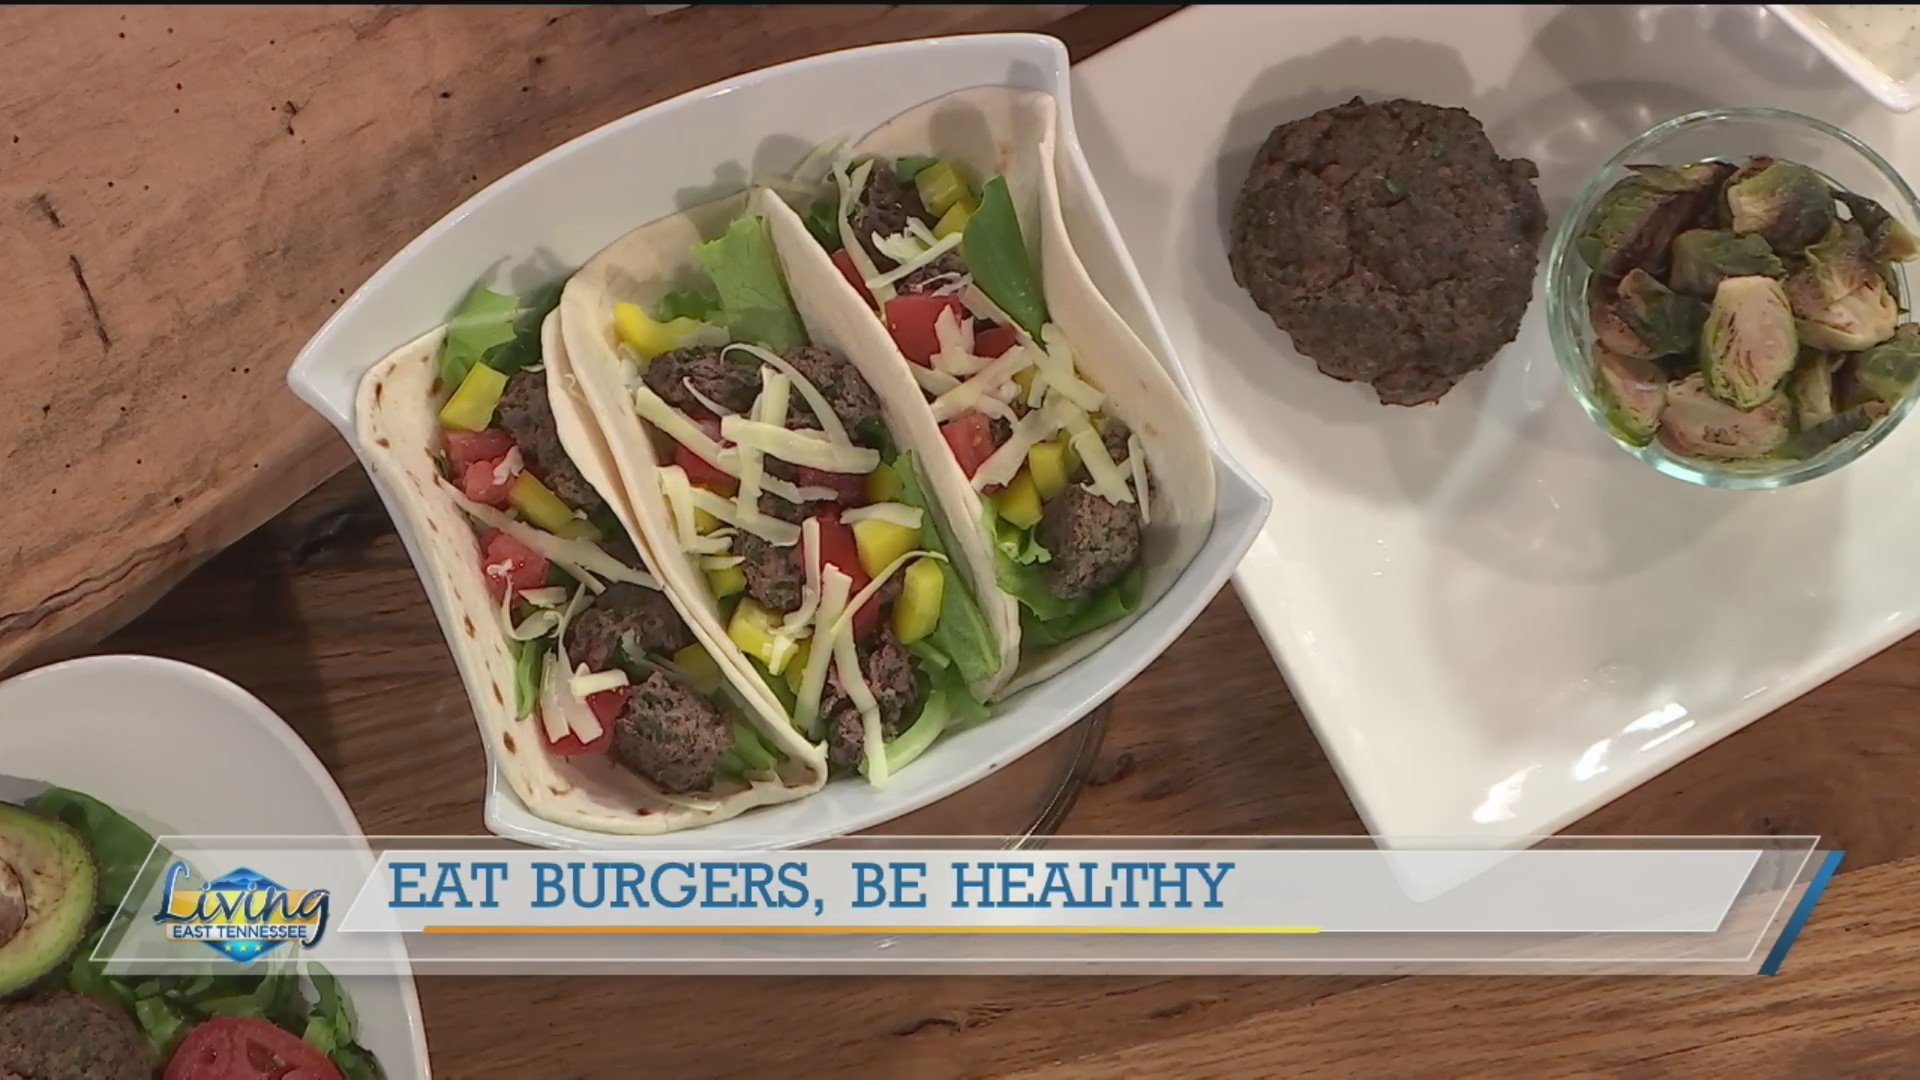 Burger Fit: Eat Burgers, Be Healthy